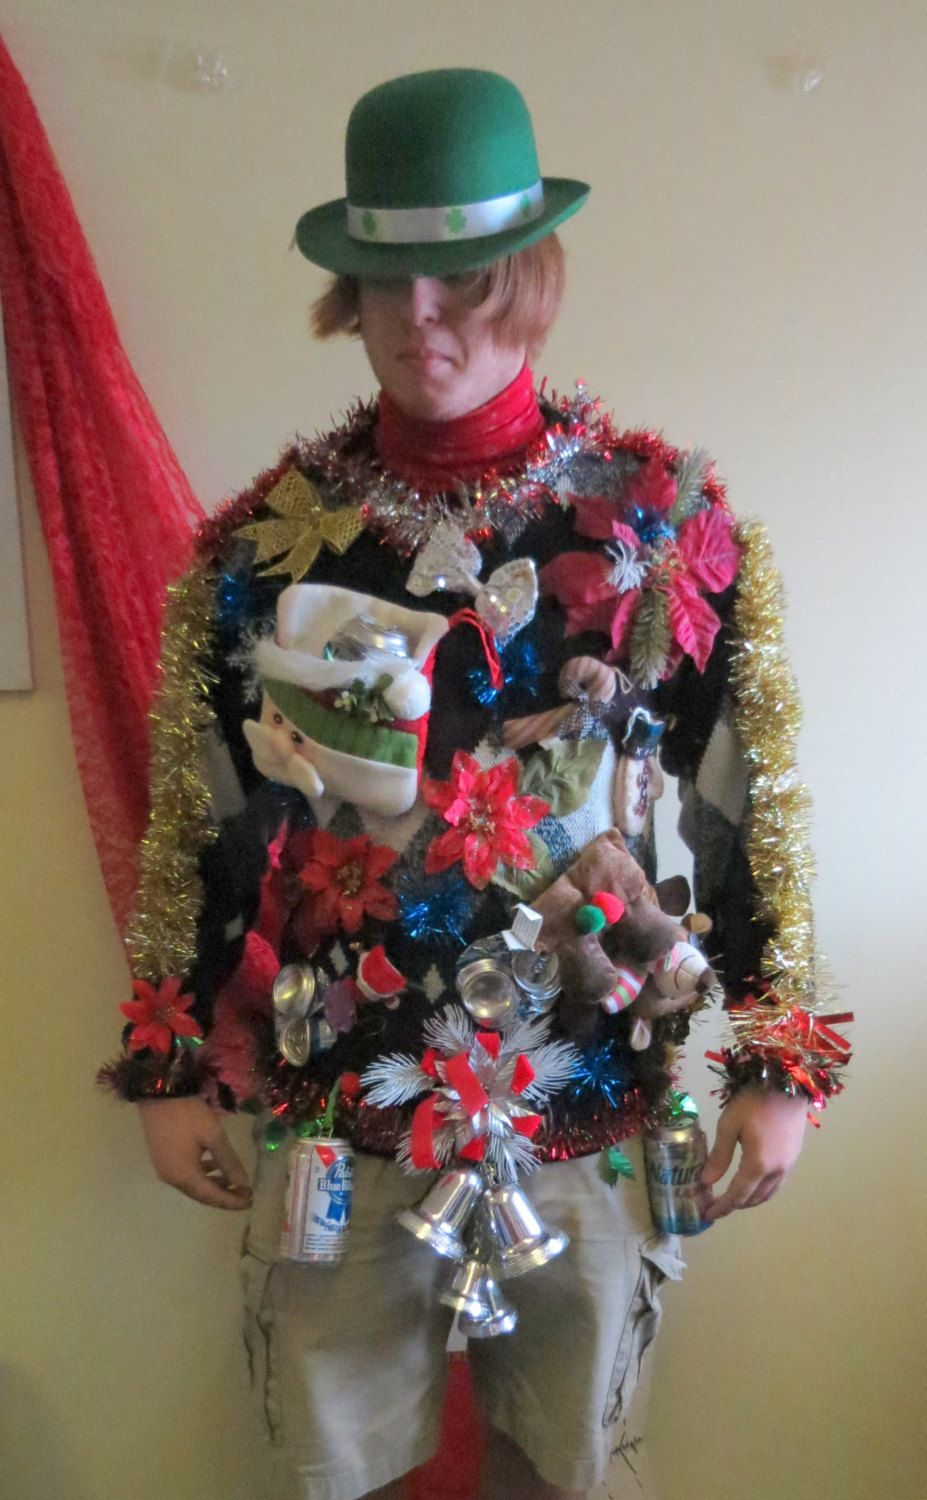 Pin on MANLY MEN UGLY CHRISTMAS SWEATERS